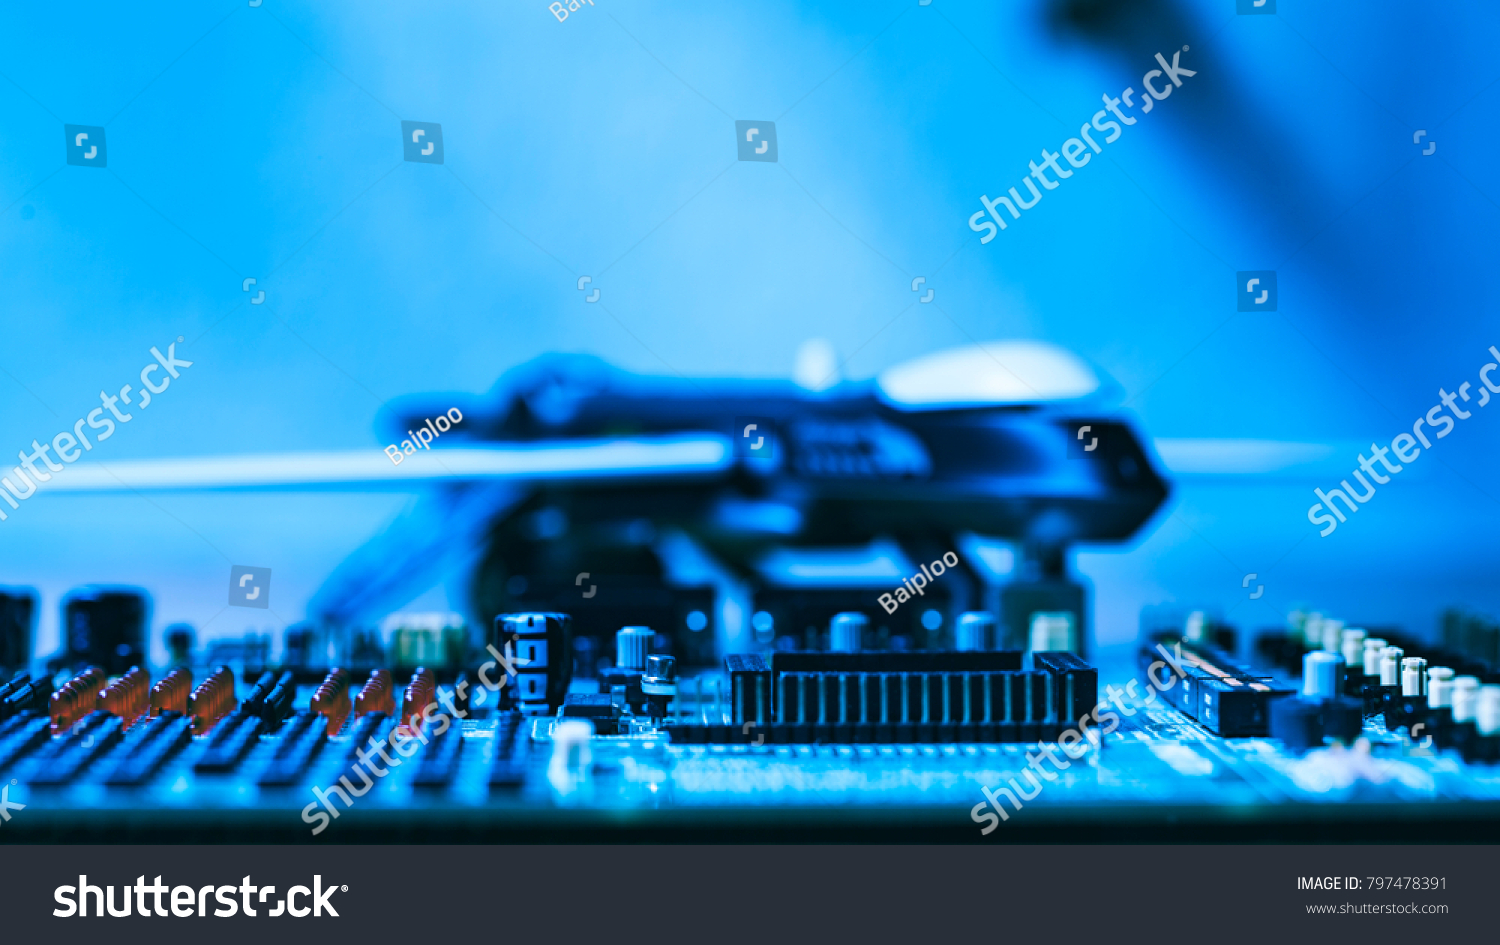 Abstract Background Real Electronic Printed Circuit Stock Photo Board Photos Images Pictures Shutterstock Of With Military Drone Helicopter In